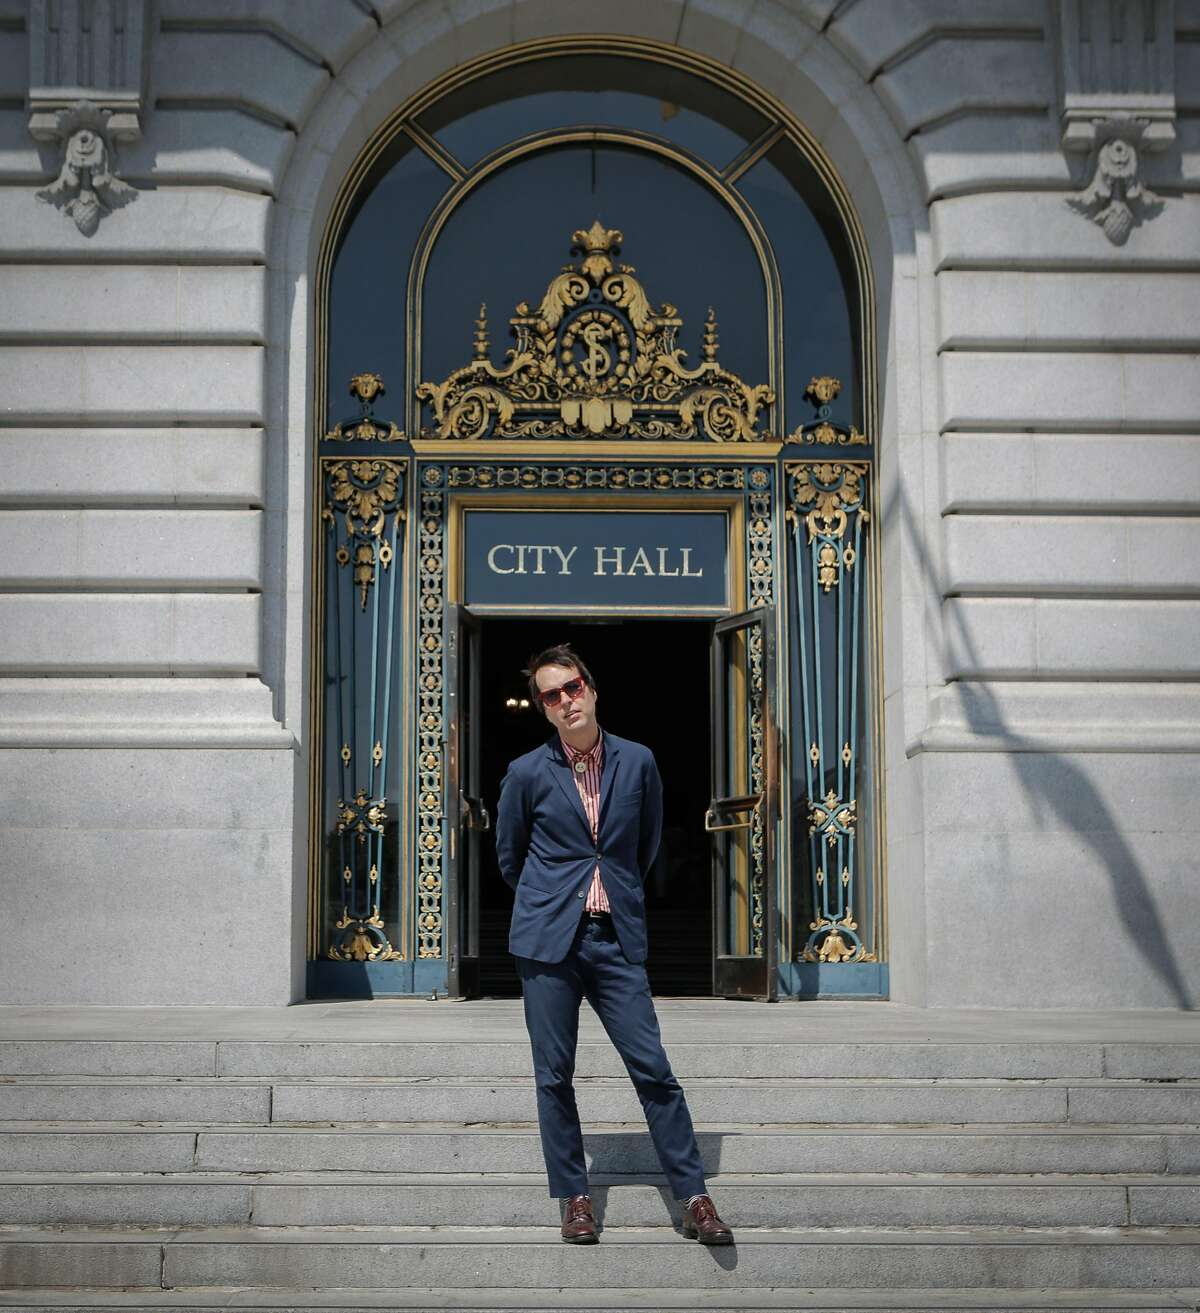 Musician Chuck Prophet poses for a portrait at City Hall in San Francisco, California, on Thursday, June 11, 2015. Prophet will be curating one of the stages at the San Francisco City Hall Centennial Celebration on June 19, 2015. Prophet is a San Francisco singer and songwriter.